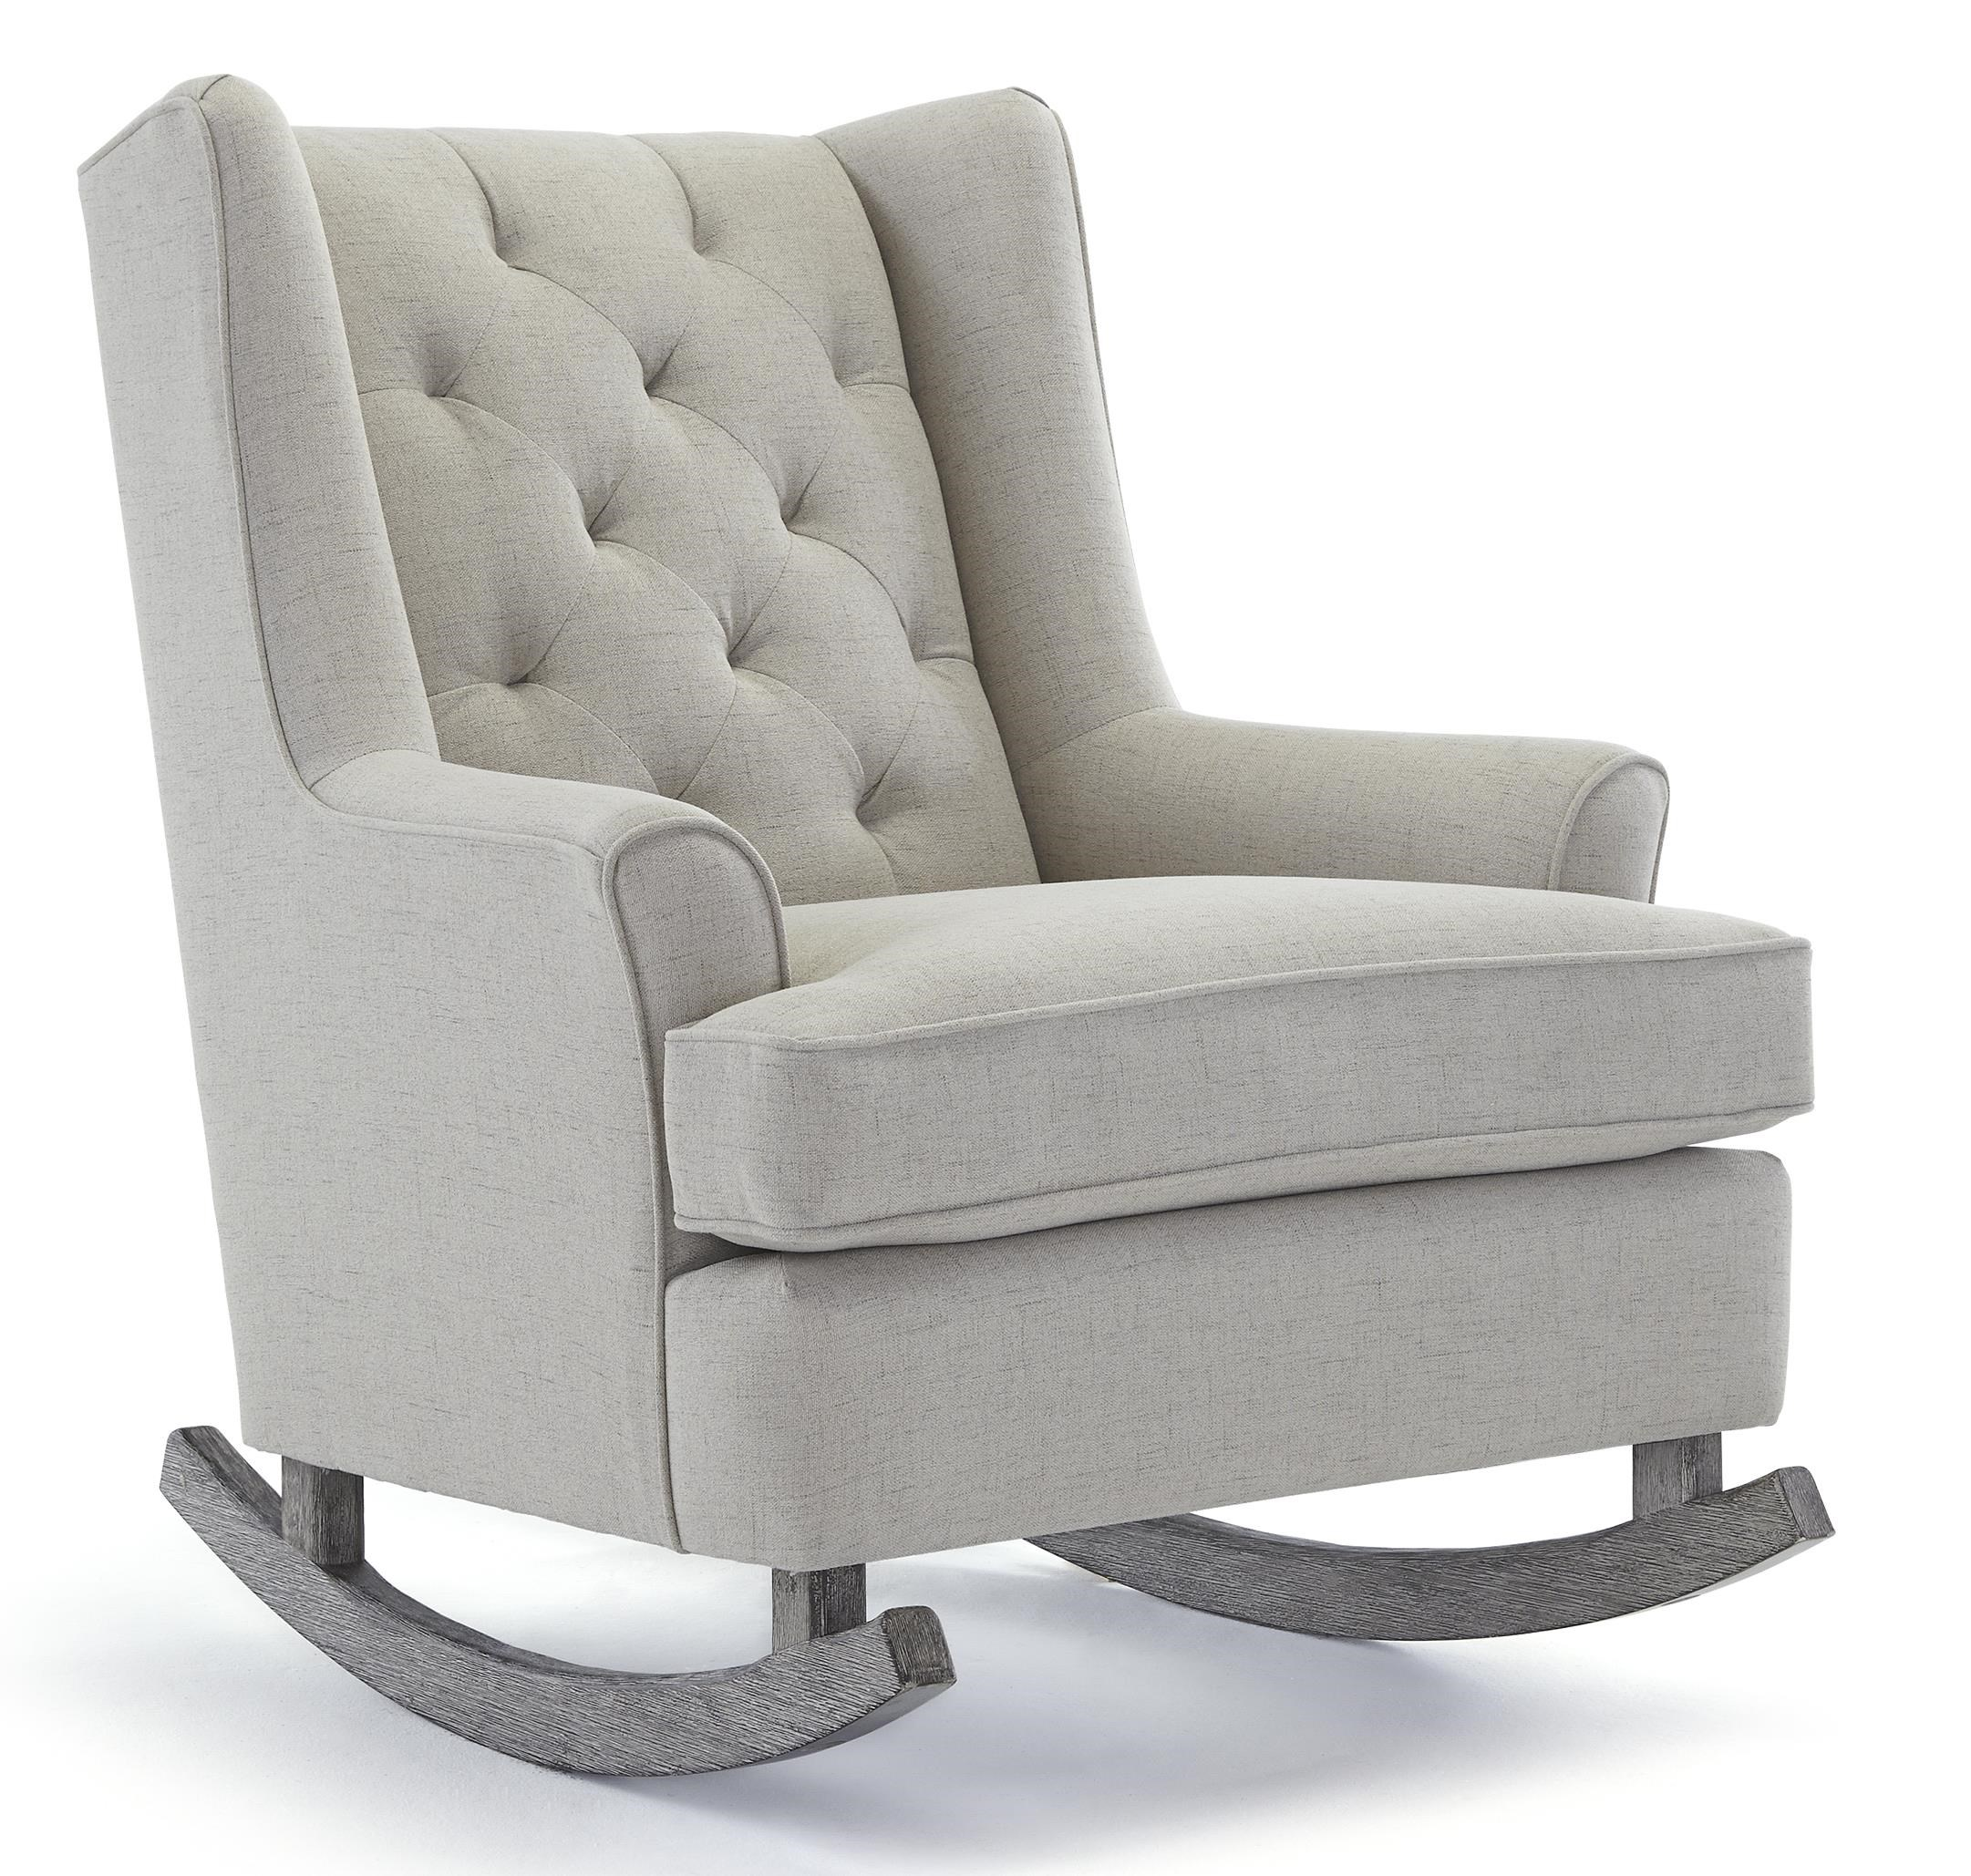 rocking chair rockers graco blossom high best home furnishings runner paisley button tufted with wood runners